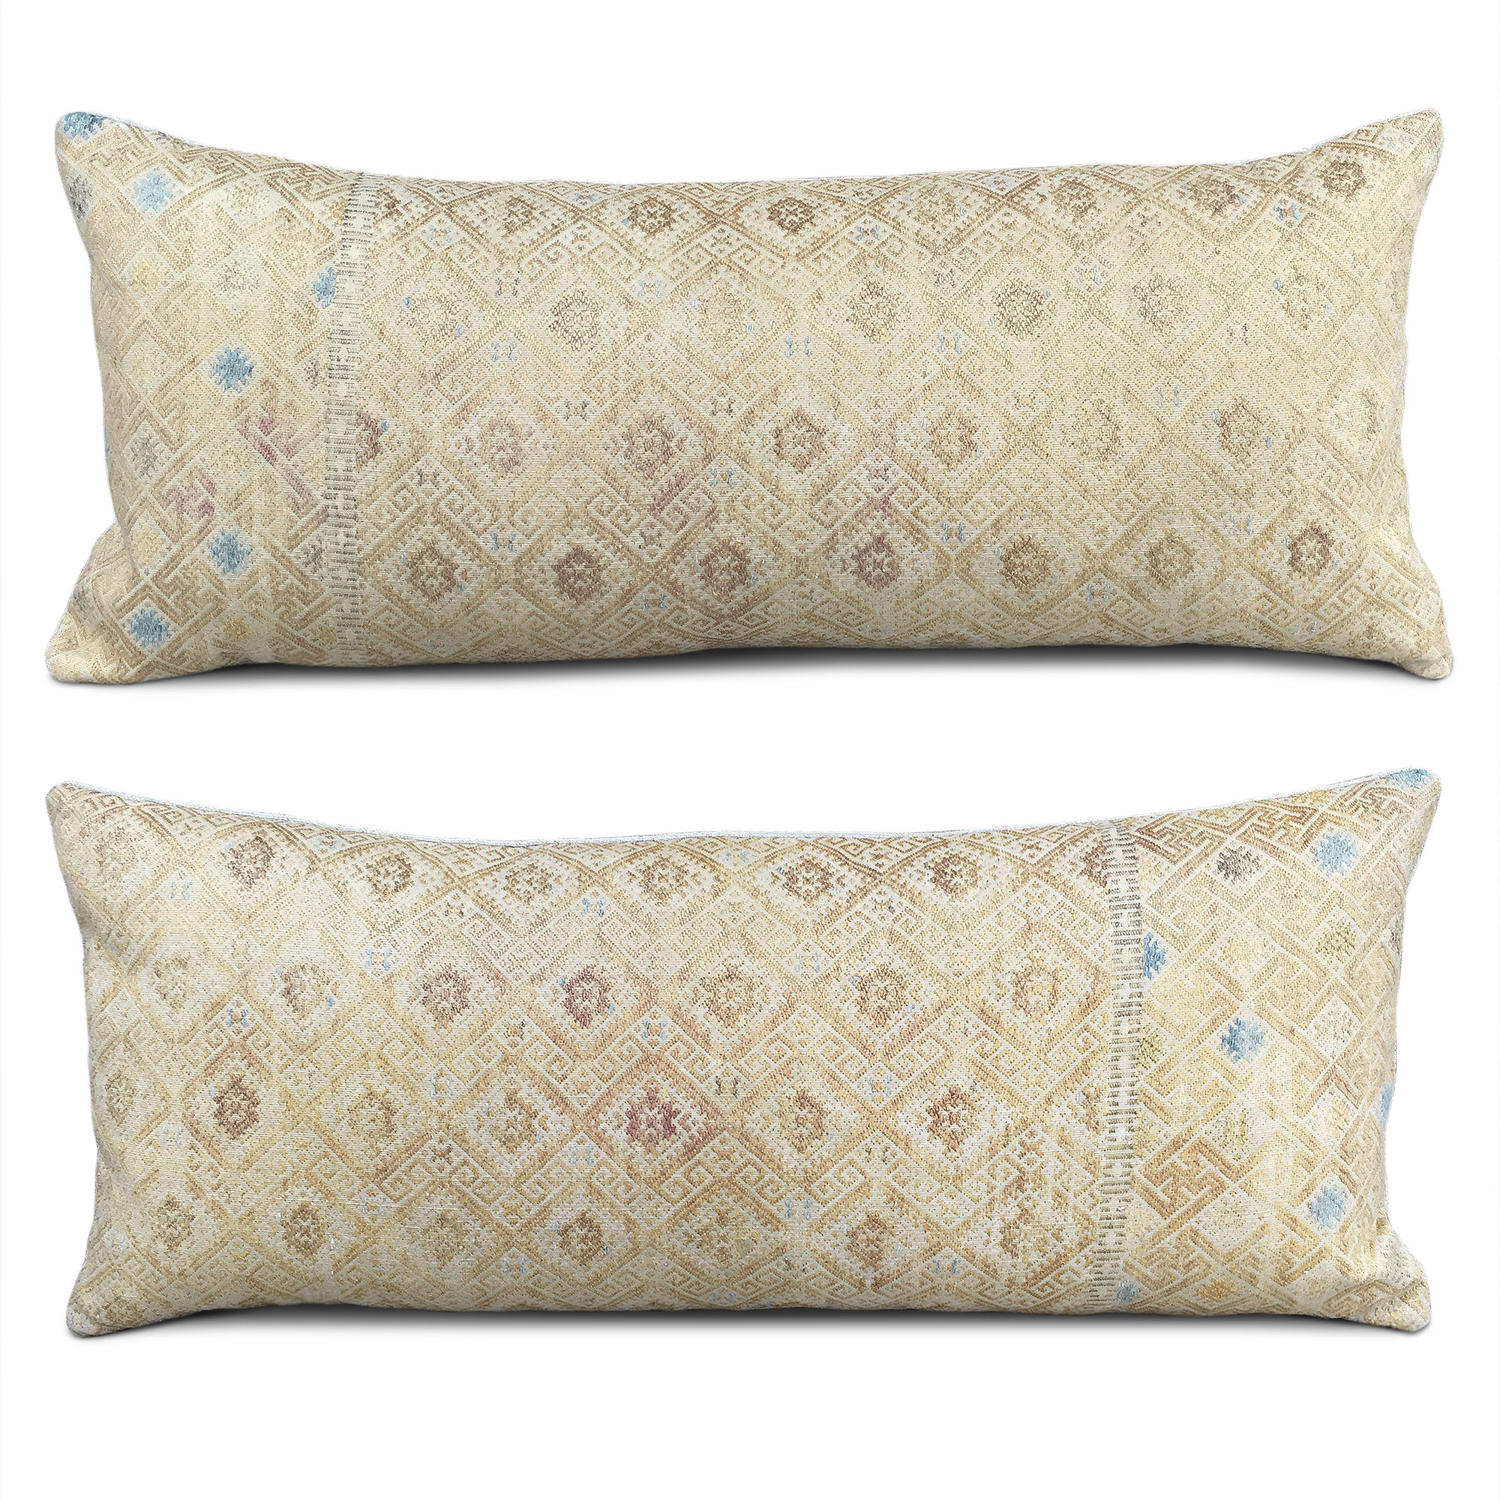 Yellow Gold Wedding Blanket Cushions